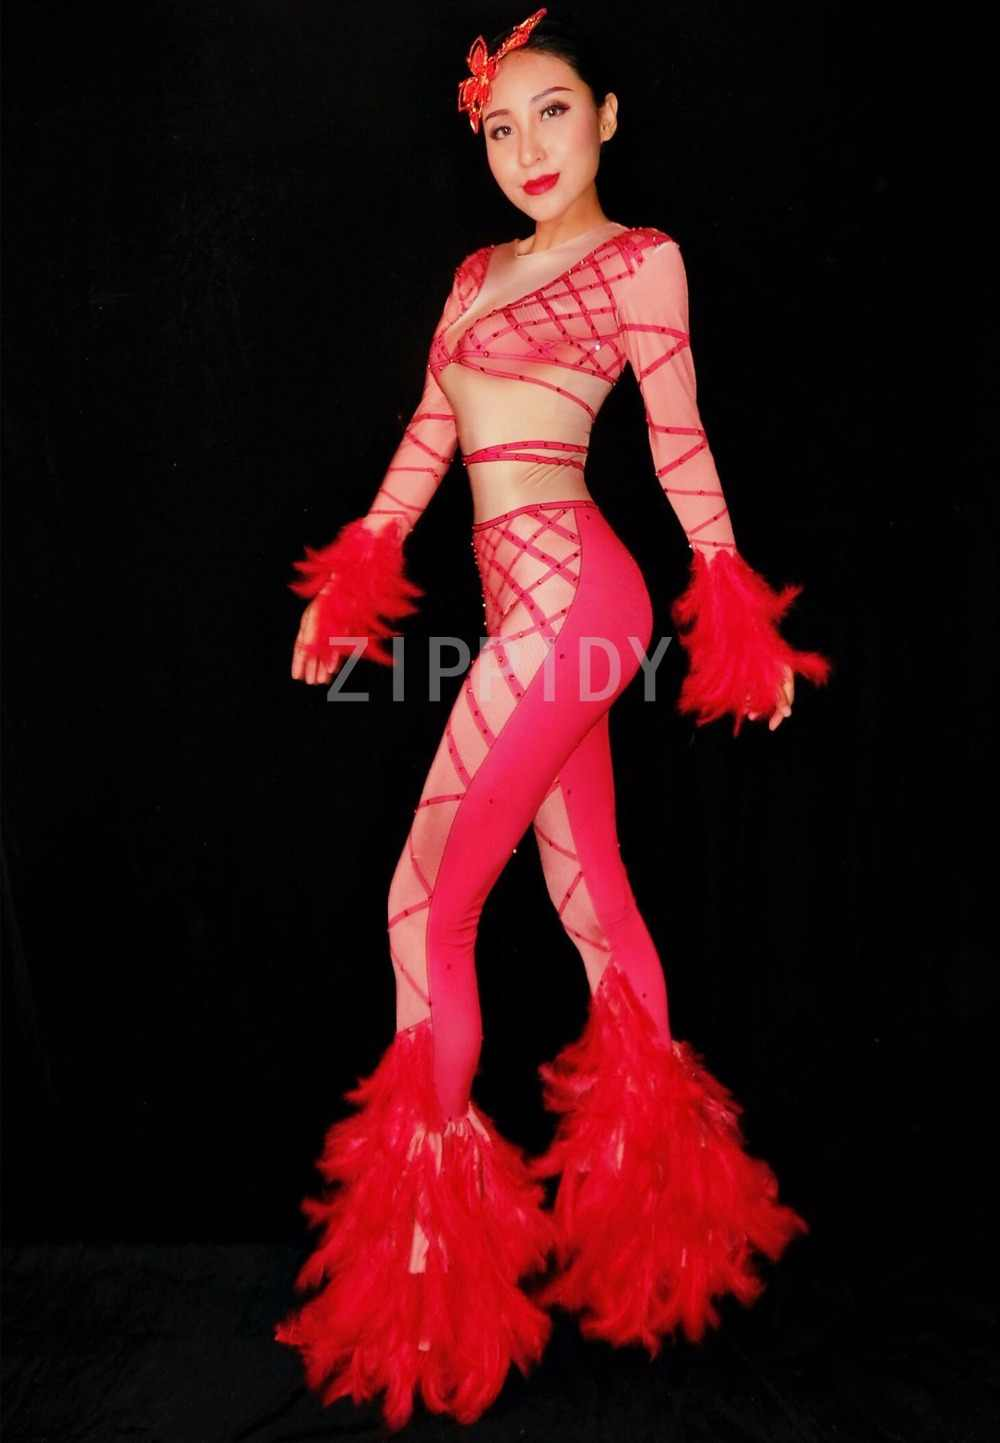 ... 2018 Red Rhinestones Bandage Printed Stretch Jumpsuit Sexy Feather  Bodysuit Female Singer Outfit Nightclub Women s Party ... 14b55d6644d5